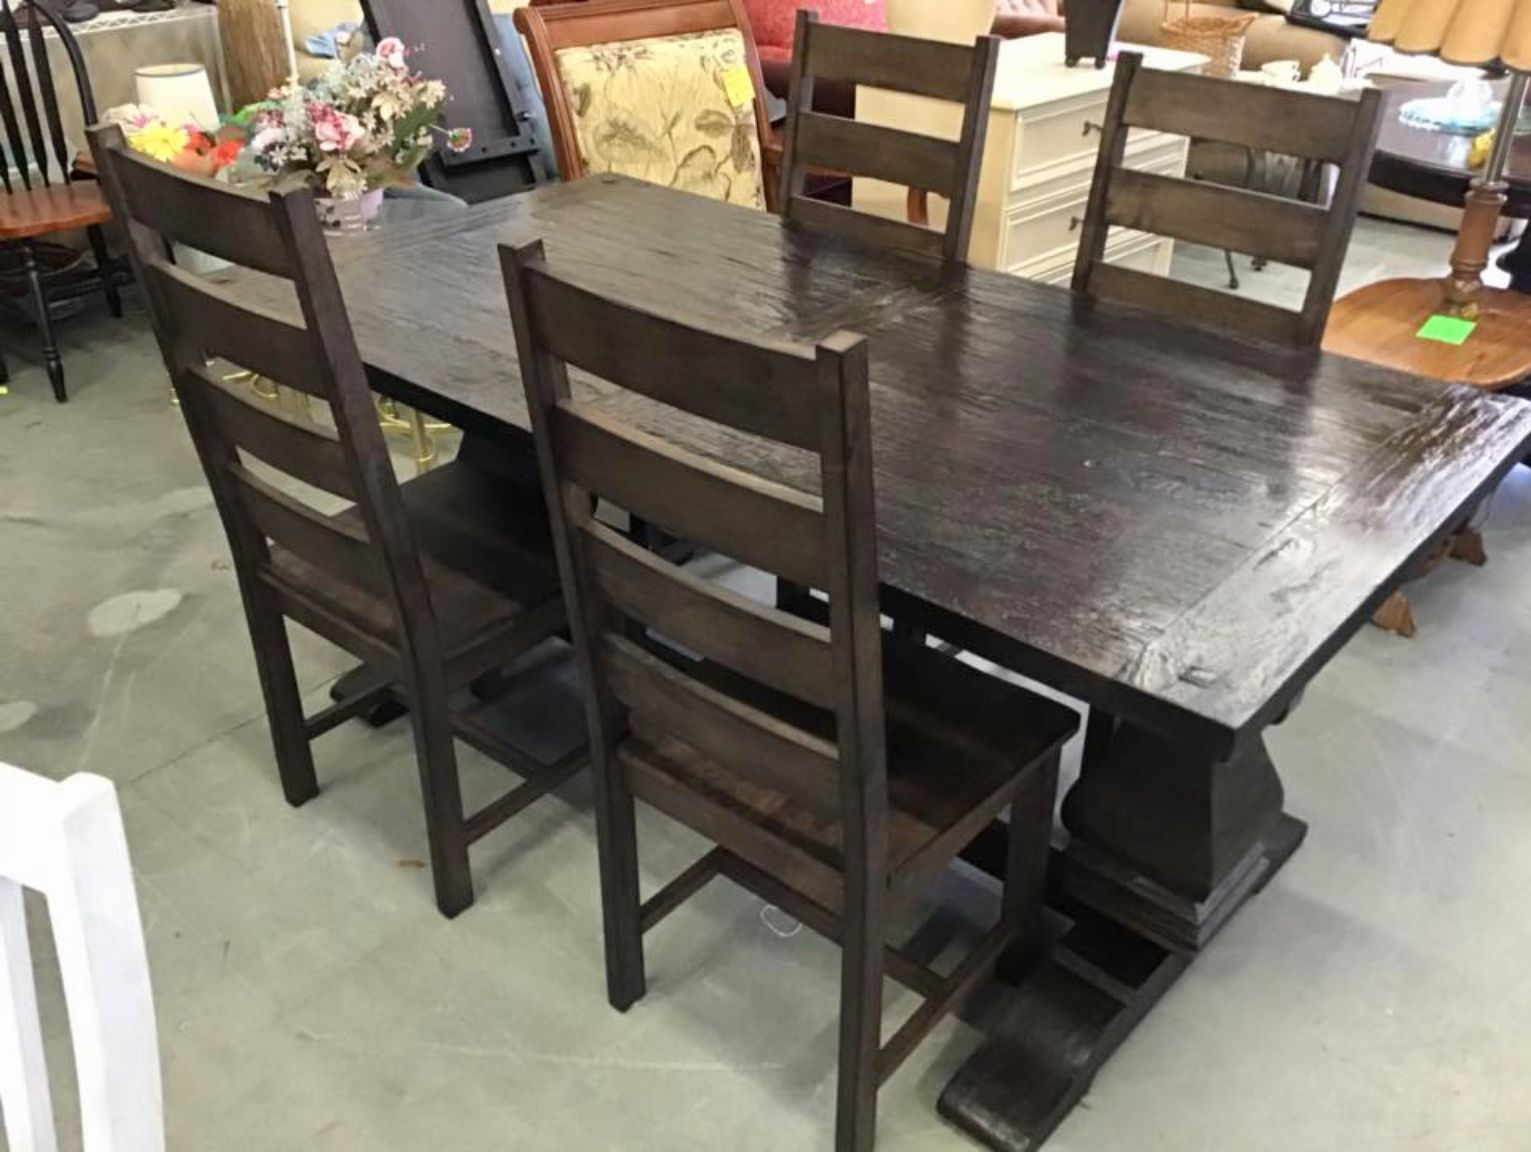 Worldmarketextensiontable4chairs Great On This Very Gently Used World Market Extension Table With Four Chairs These Garner Run New 279 00 For